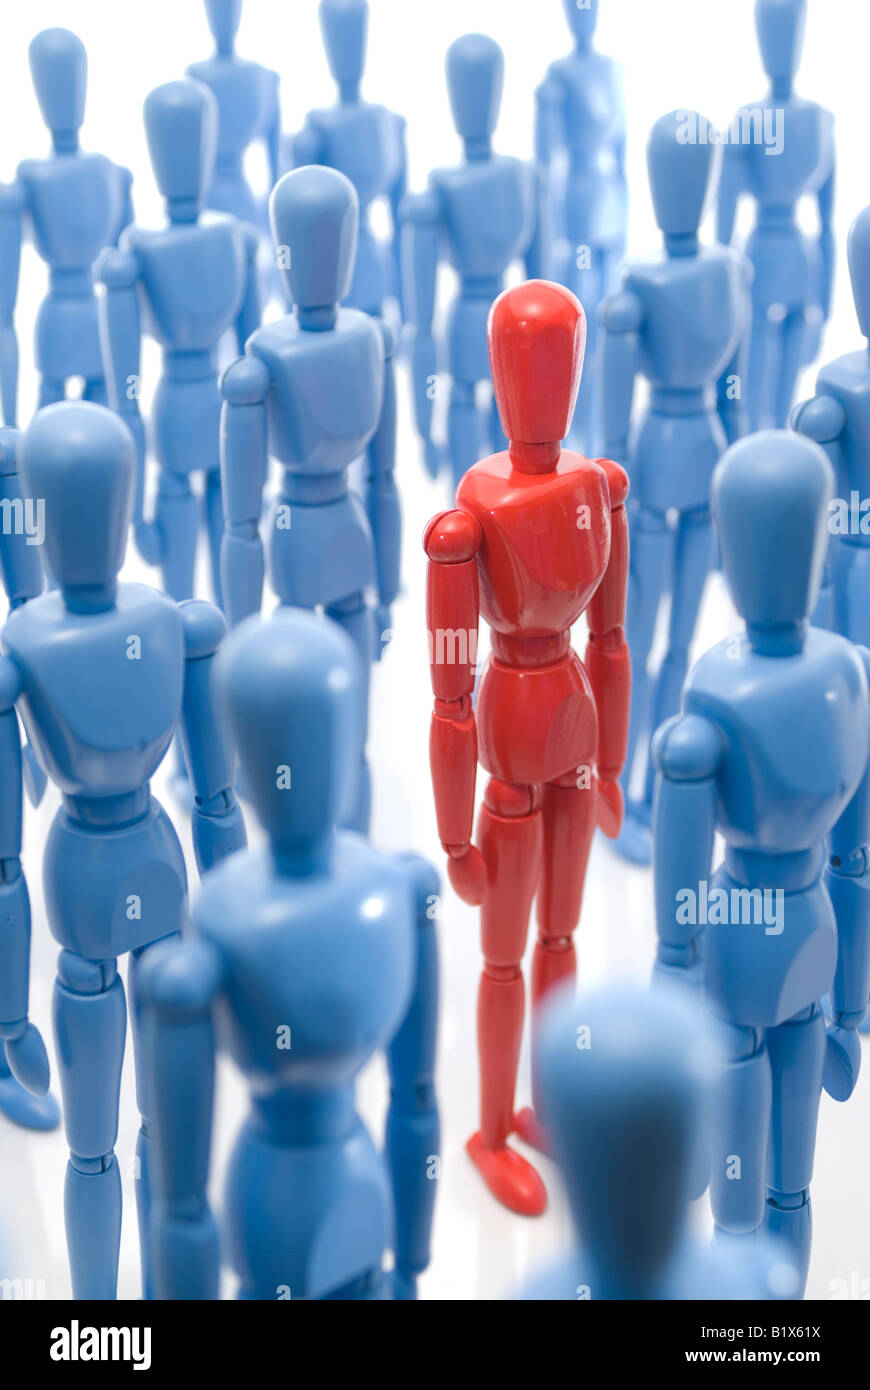 Standing out in the crowd - Stock Image